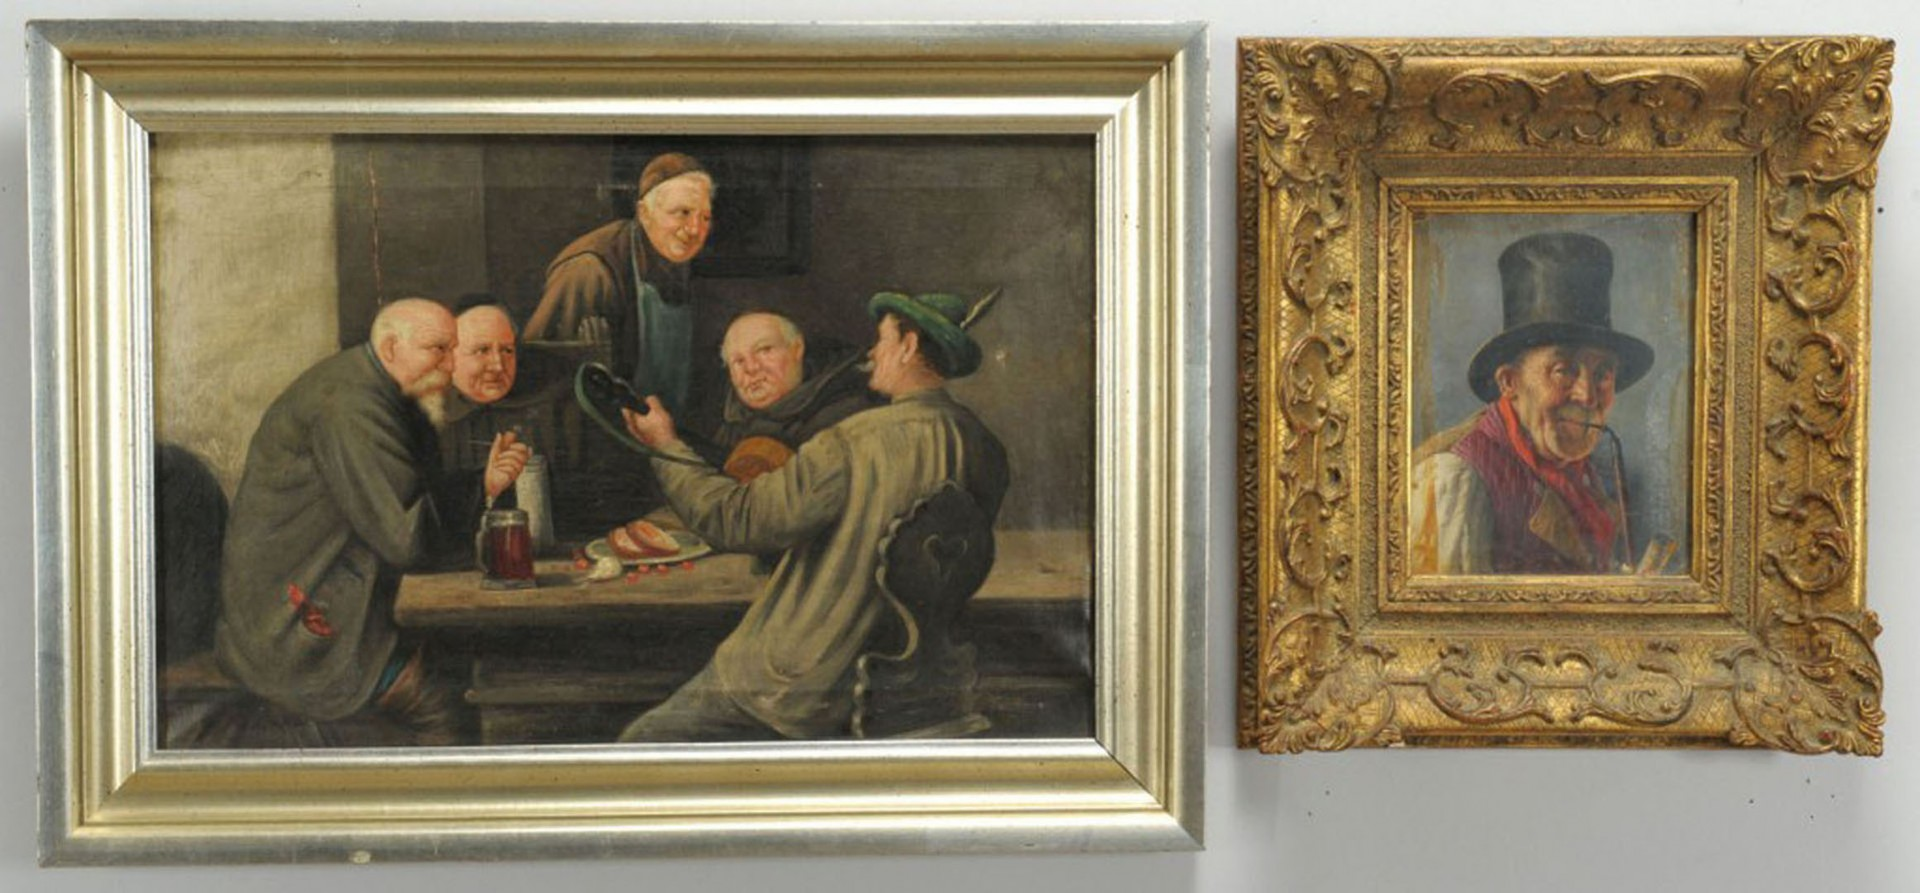 Lot 2872263: Grouping of two European paintings